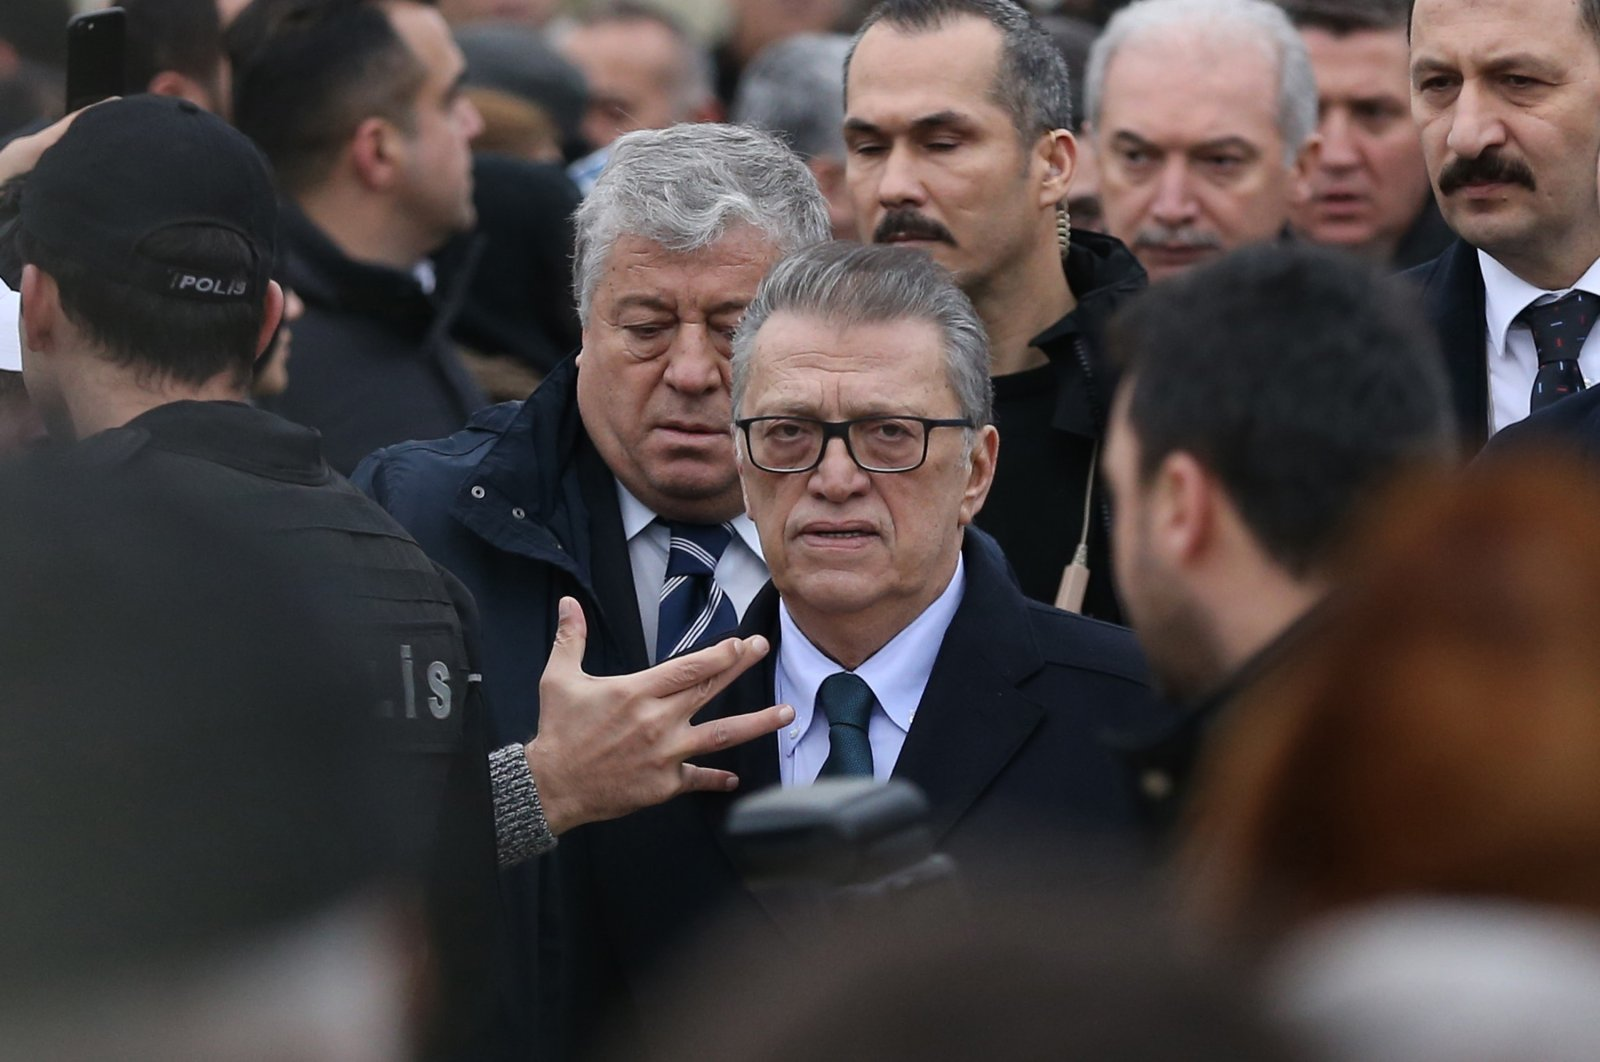 Former Prime Minister Mesut Yılmaz (C) attends the funeral of his son Yavuz at a mosque in Istanbul, Turkey, Dec. 18, 2017. (AA Photo)